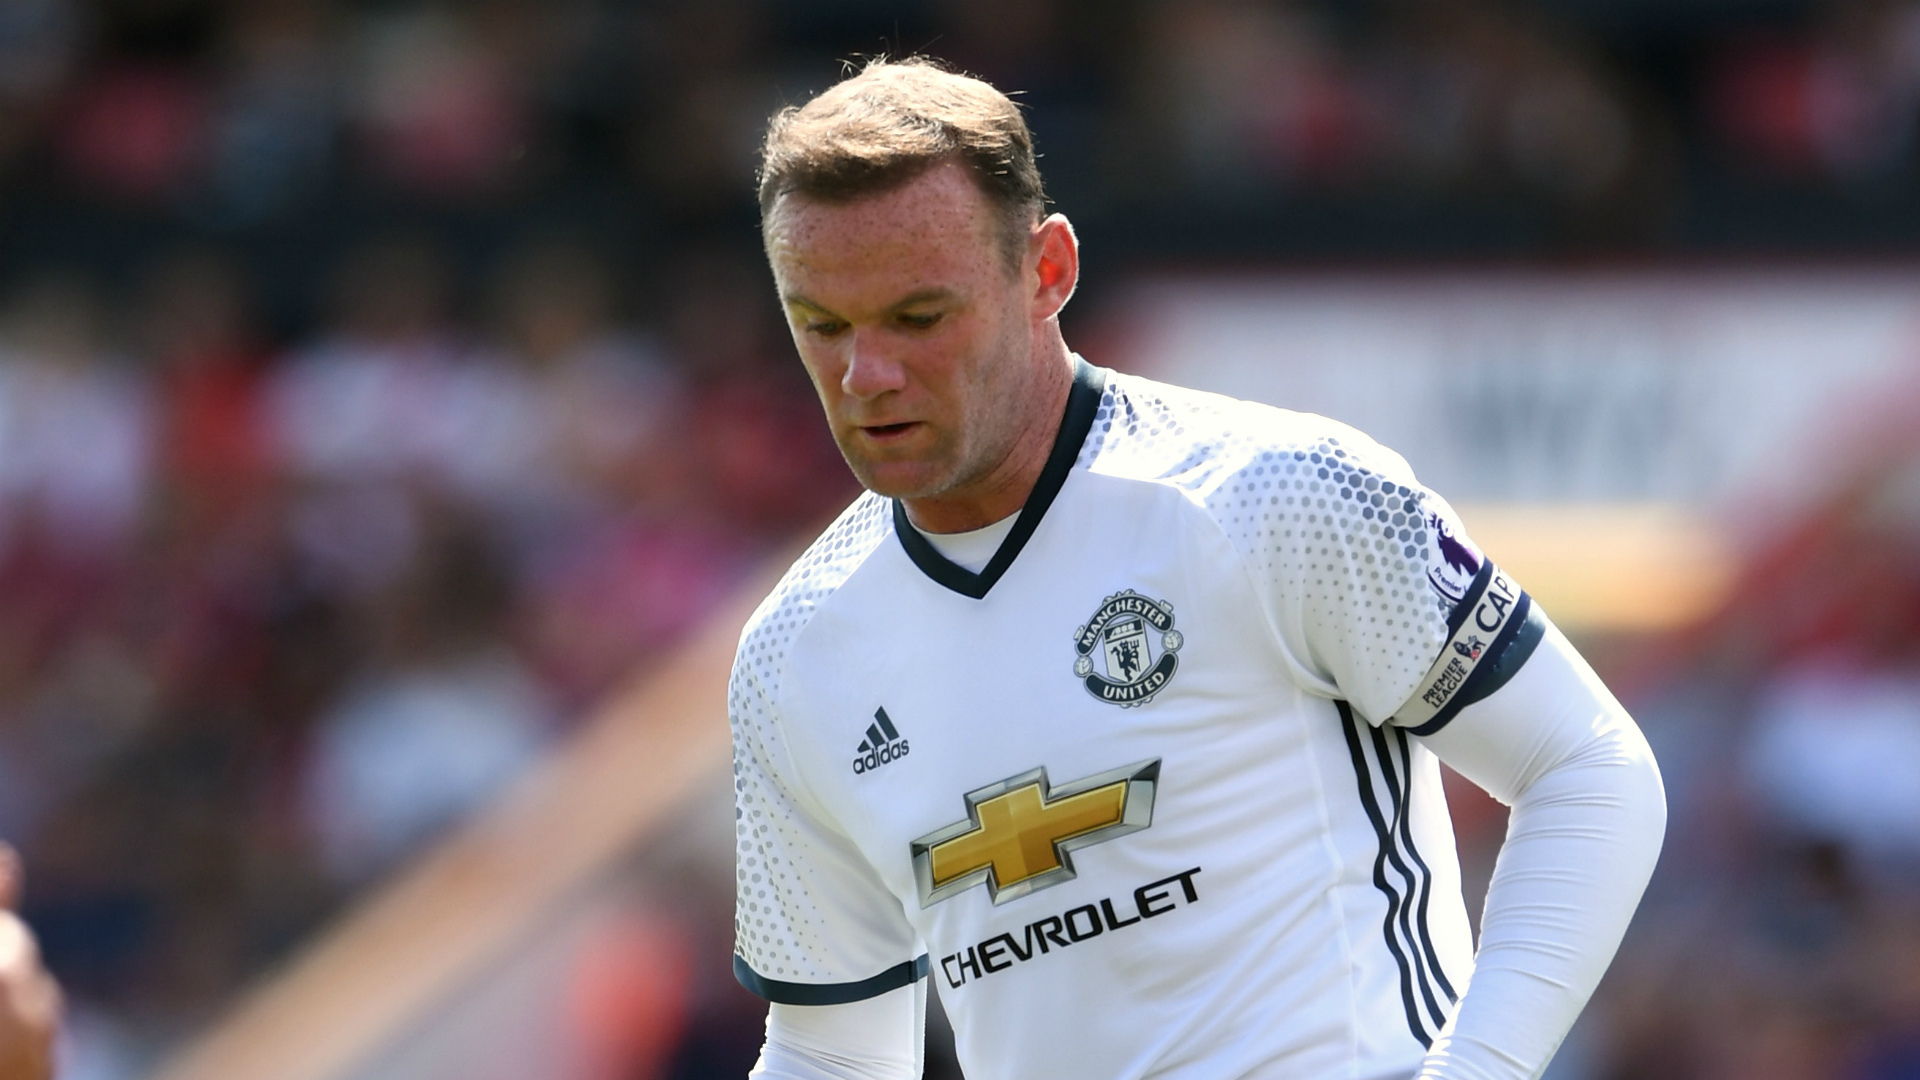 Wayne Rooney to retire from global football after 2018 World Cup